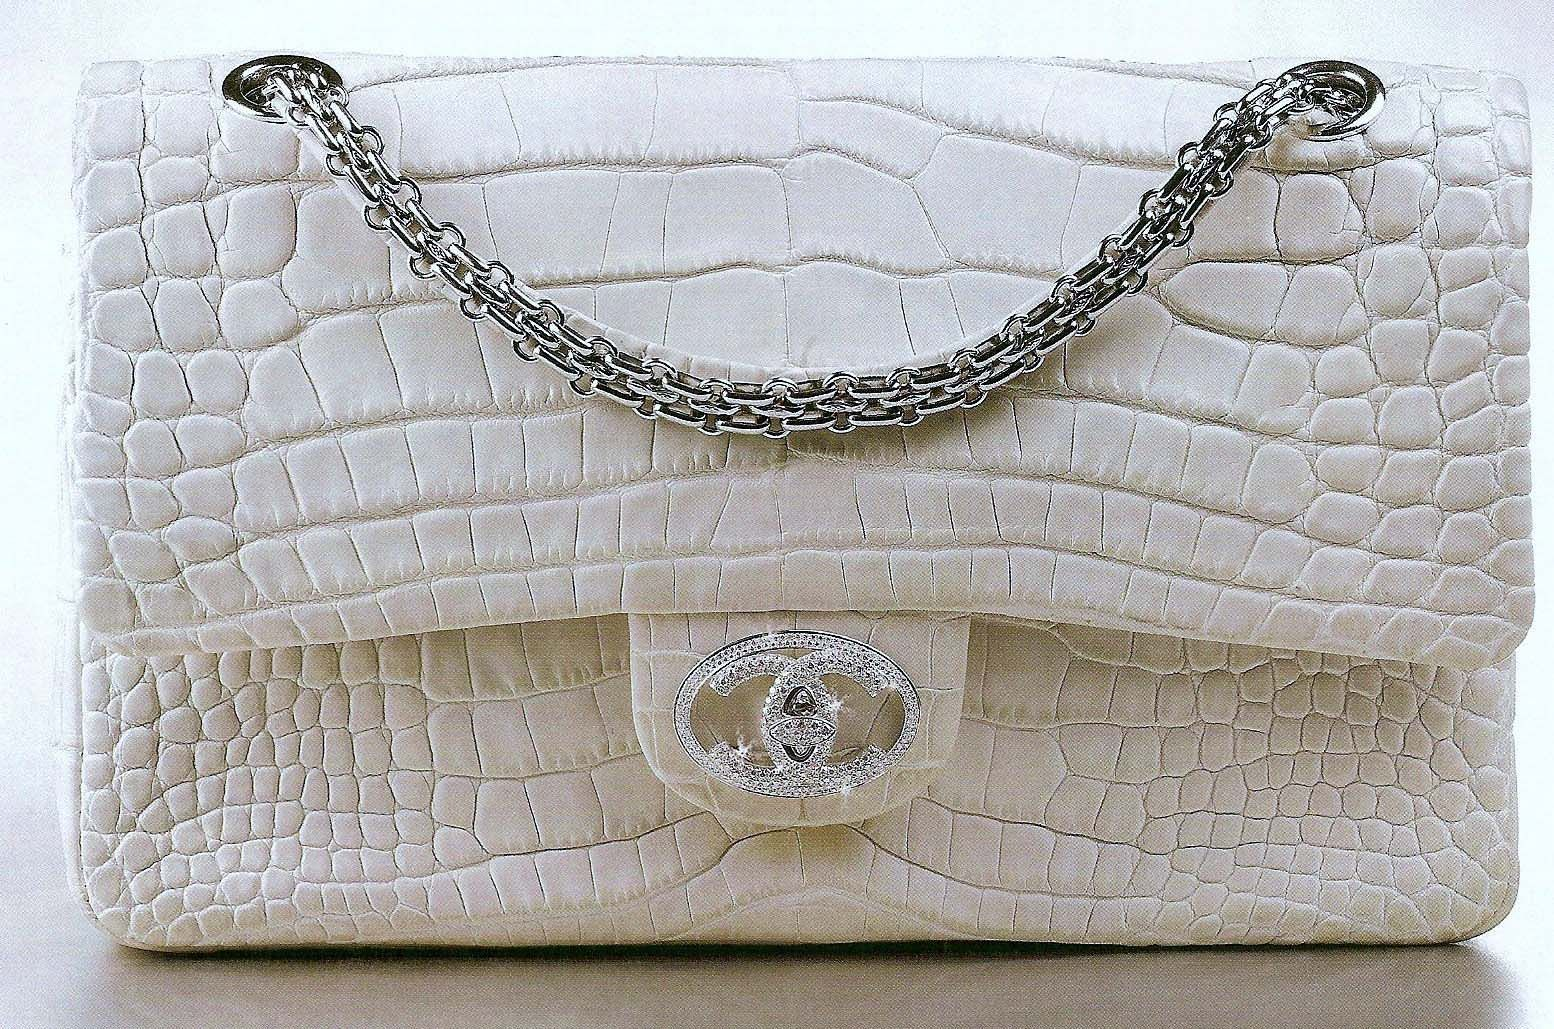 10 Most Expensive Purse Brand 2017 For Rich S Pursepensivebrands